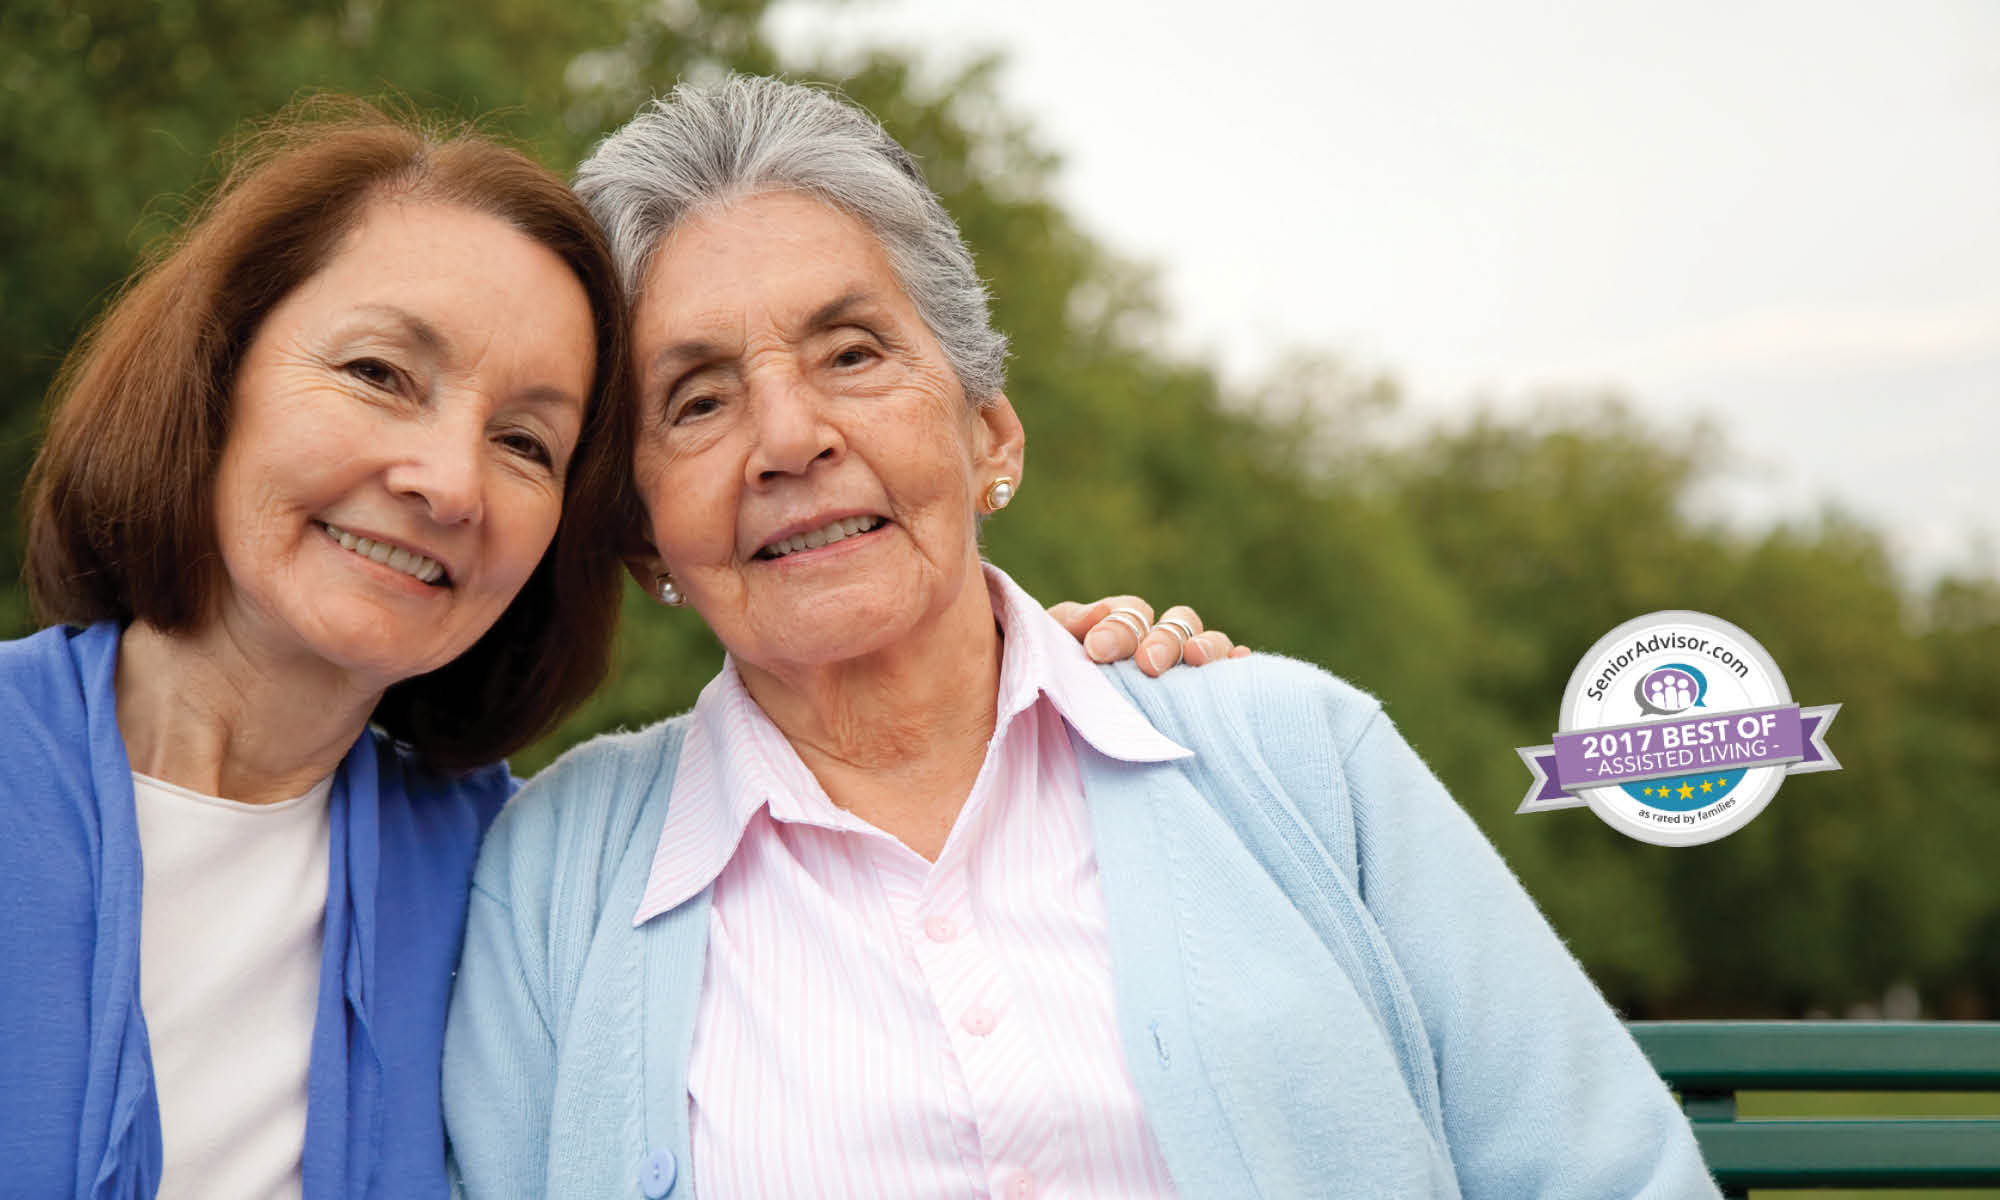 port richey senior personals Browse the #1 site for reviews and pricing for new port richey, fl senior apartments compare 32 providers call (866) 592-7887.